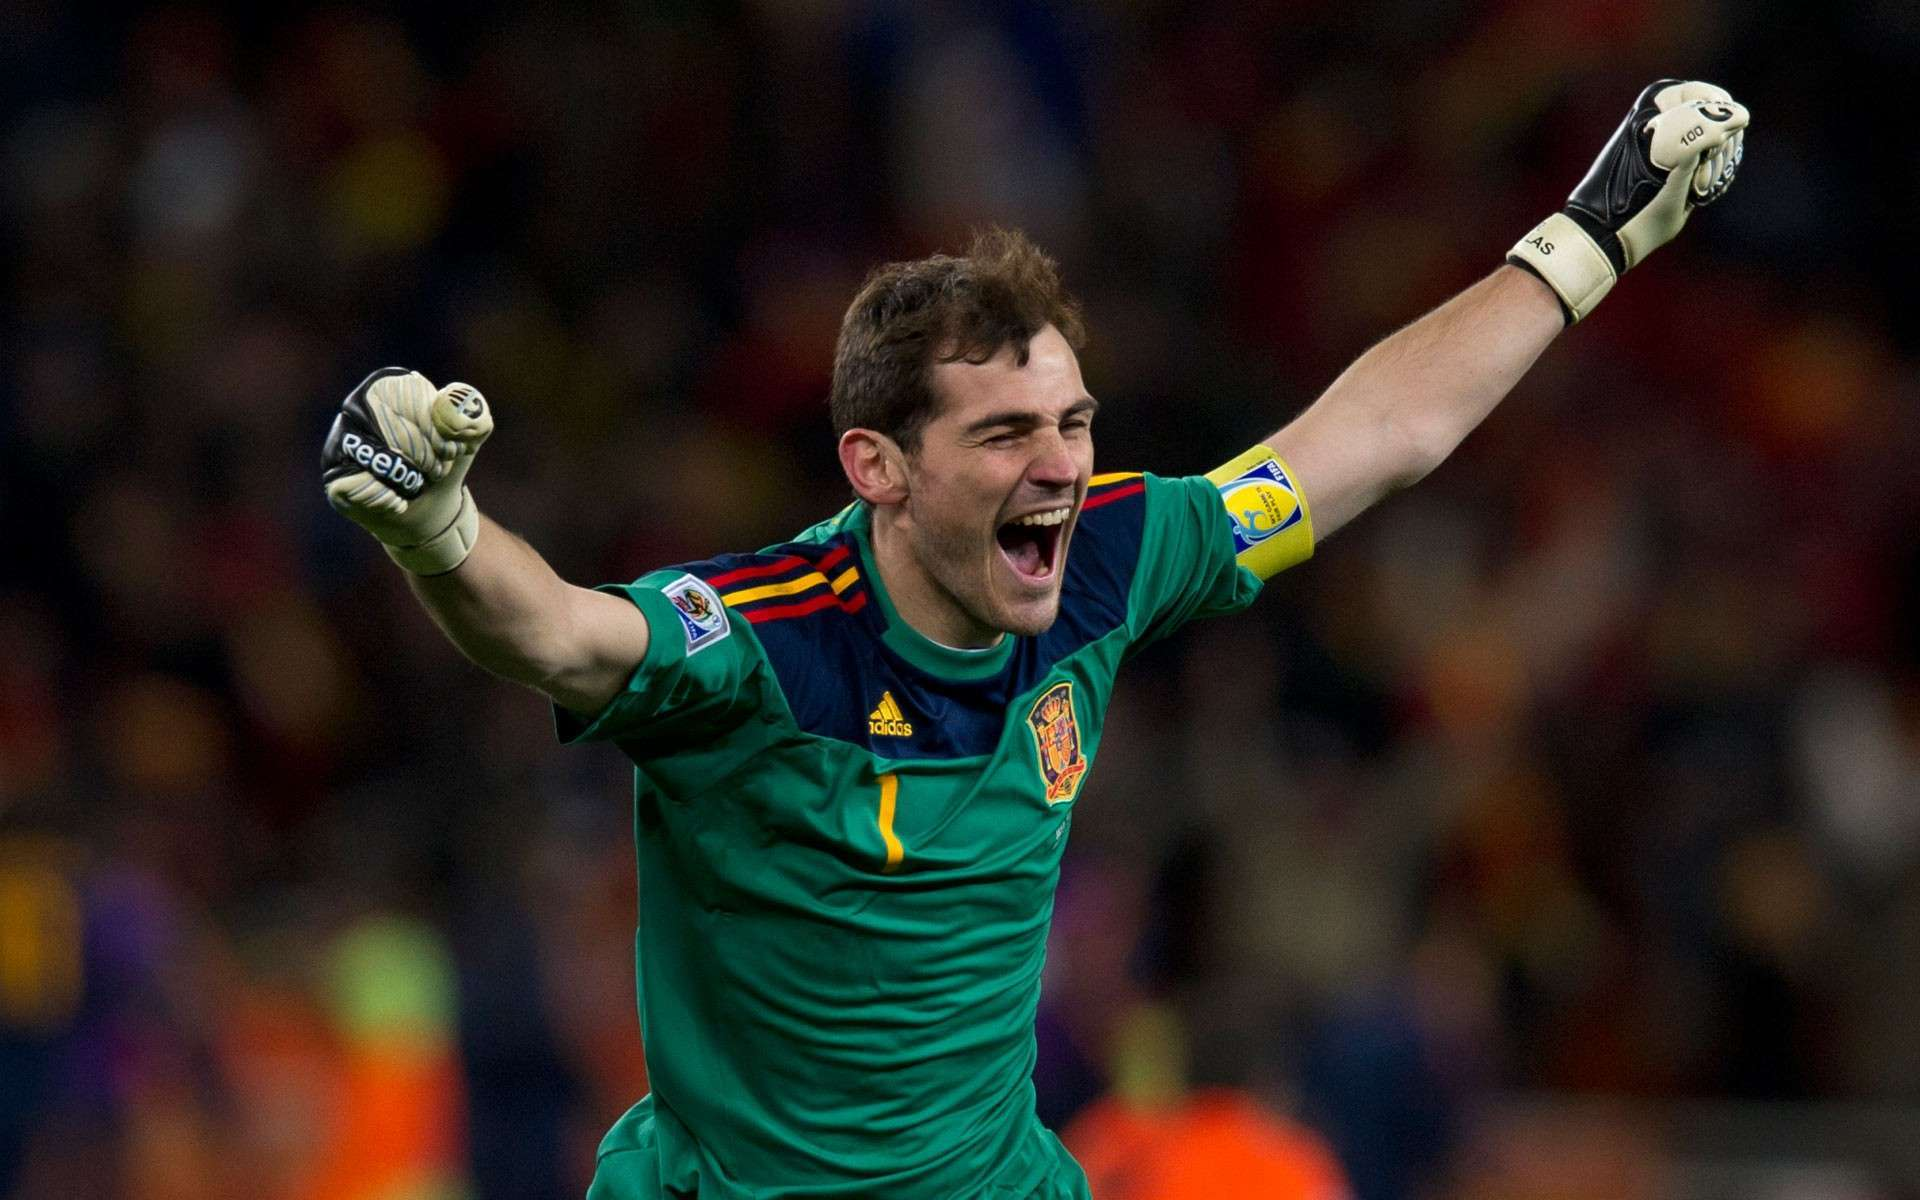 Iker Casillas wallpaper and Theme for Windows Xp/7/8.1/10 | All ...